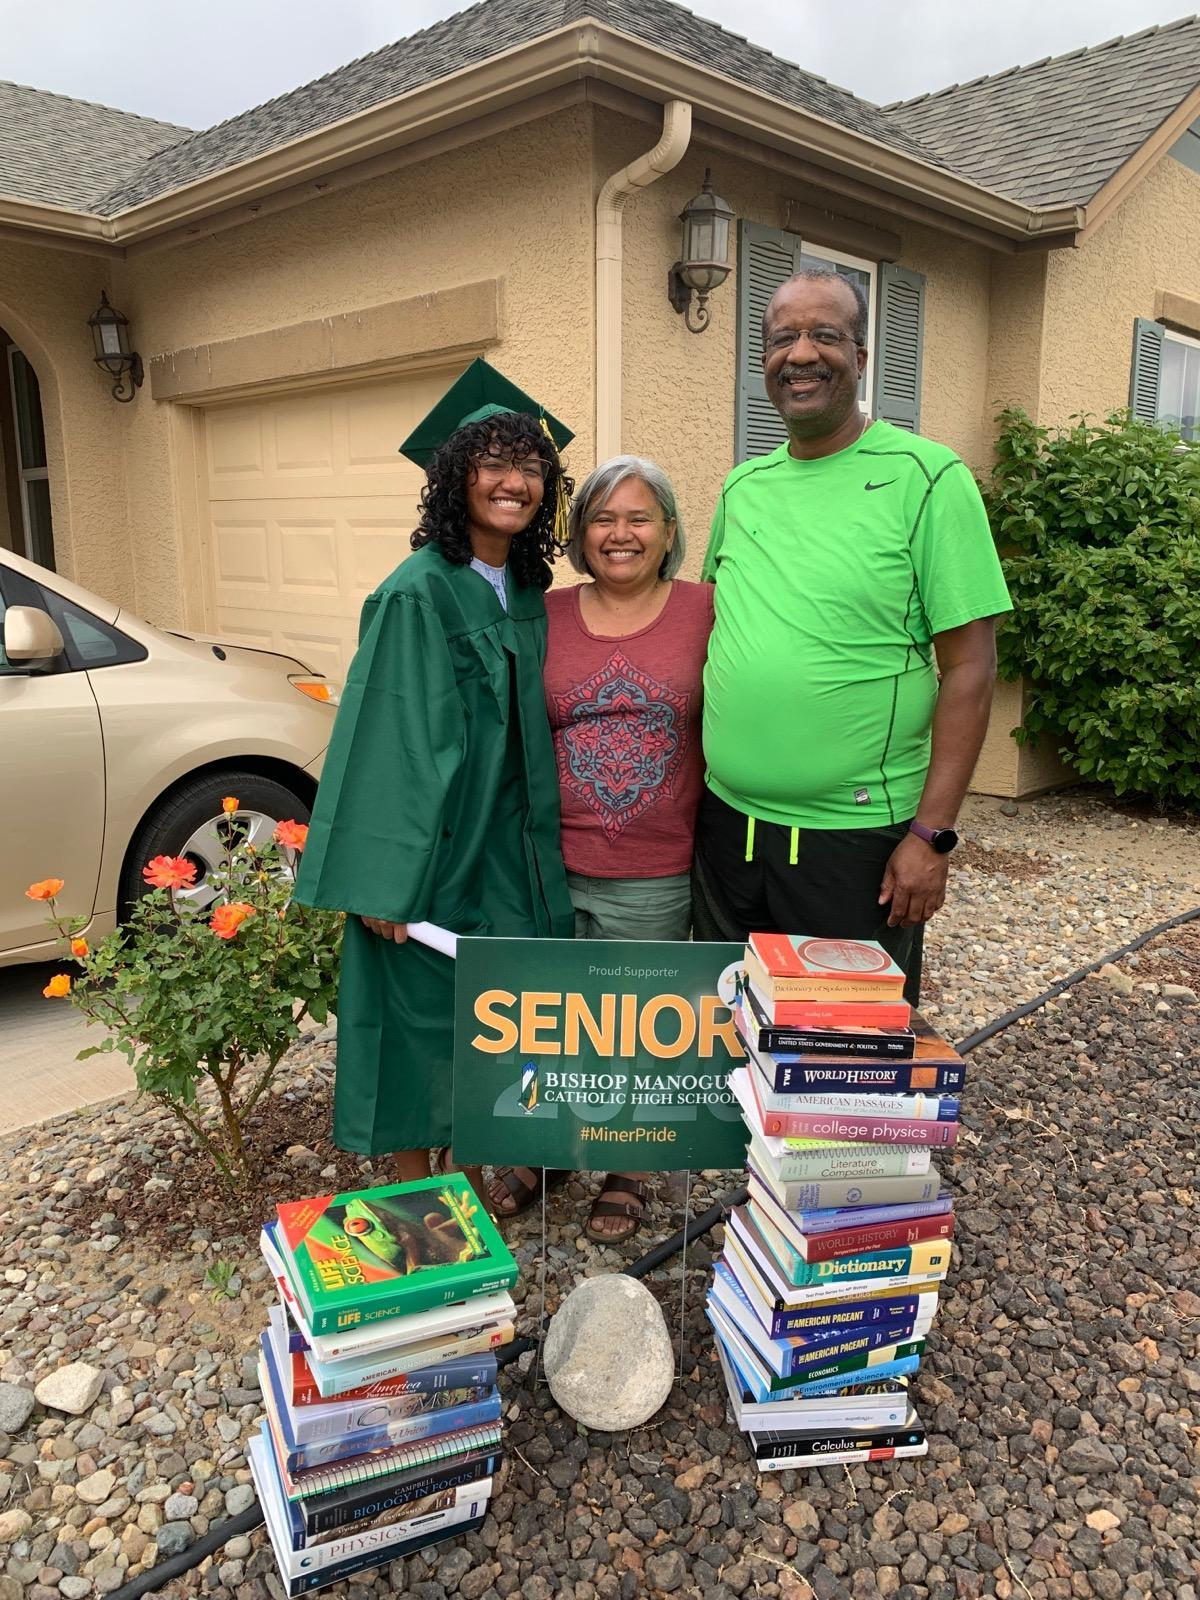 AFSCME Local 4041 members Andre and Daphne DeLeon, and their daughter Maali, a 2020 AFSCME Family Scholarship winner